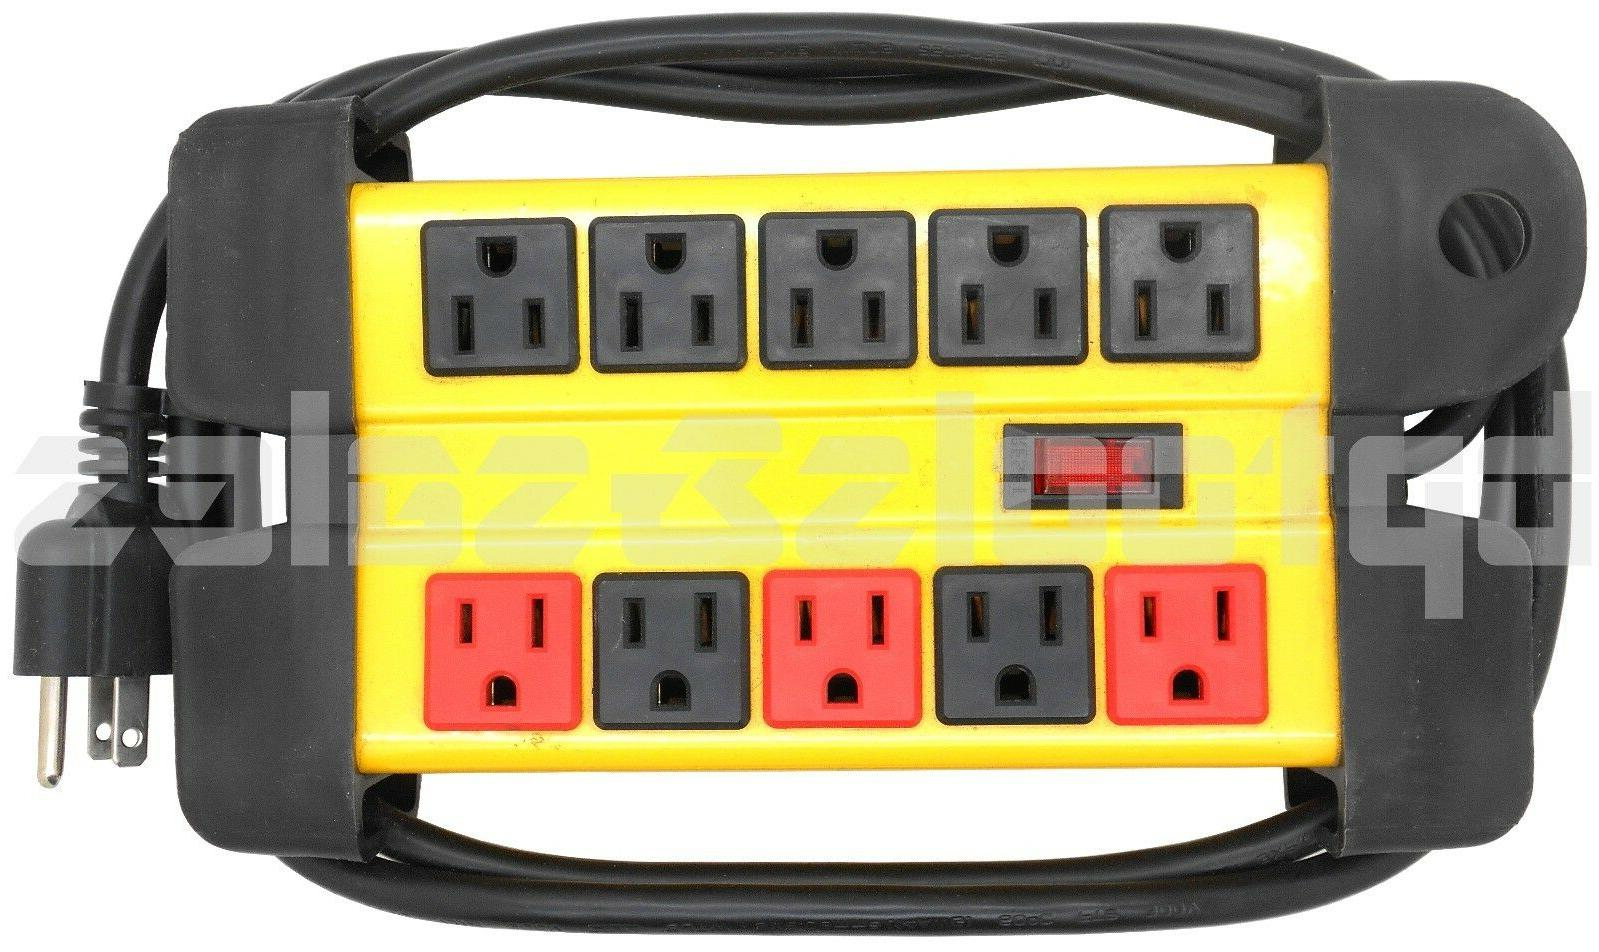 10 Outlet Power Strip Surge Protector Metal Housing Charging